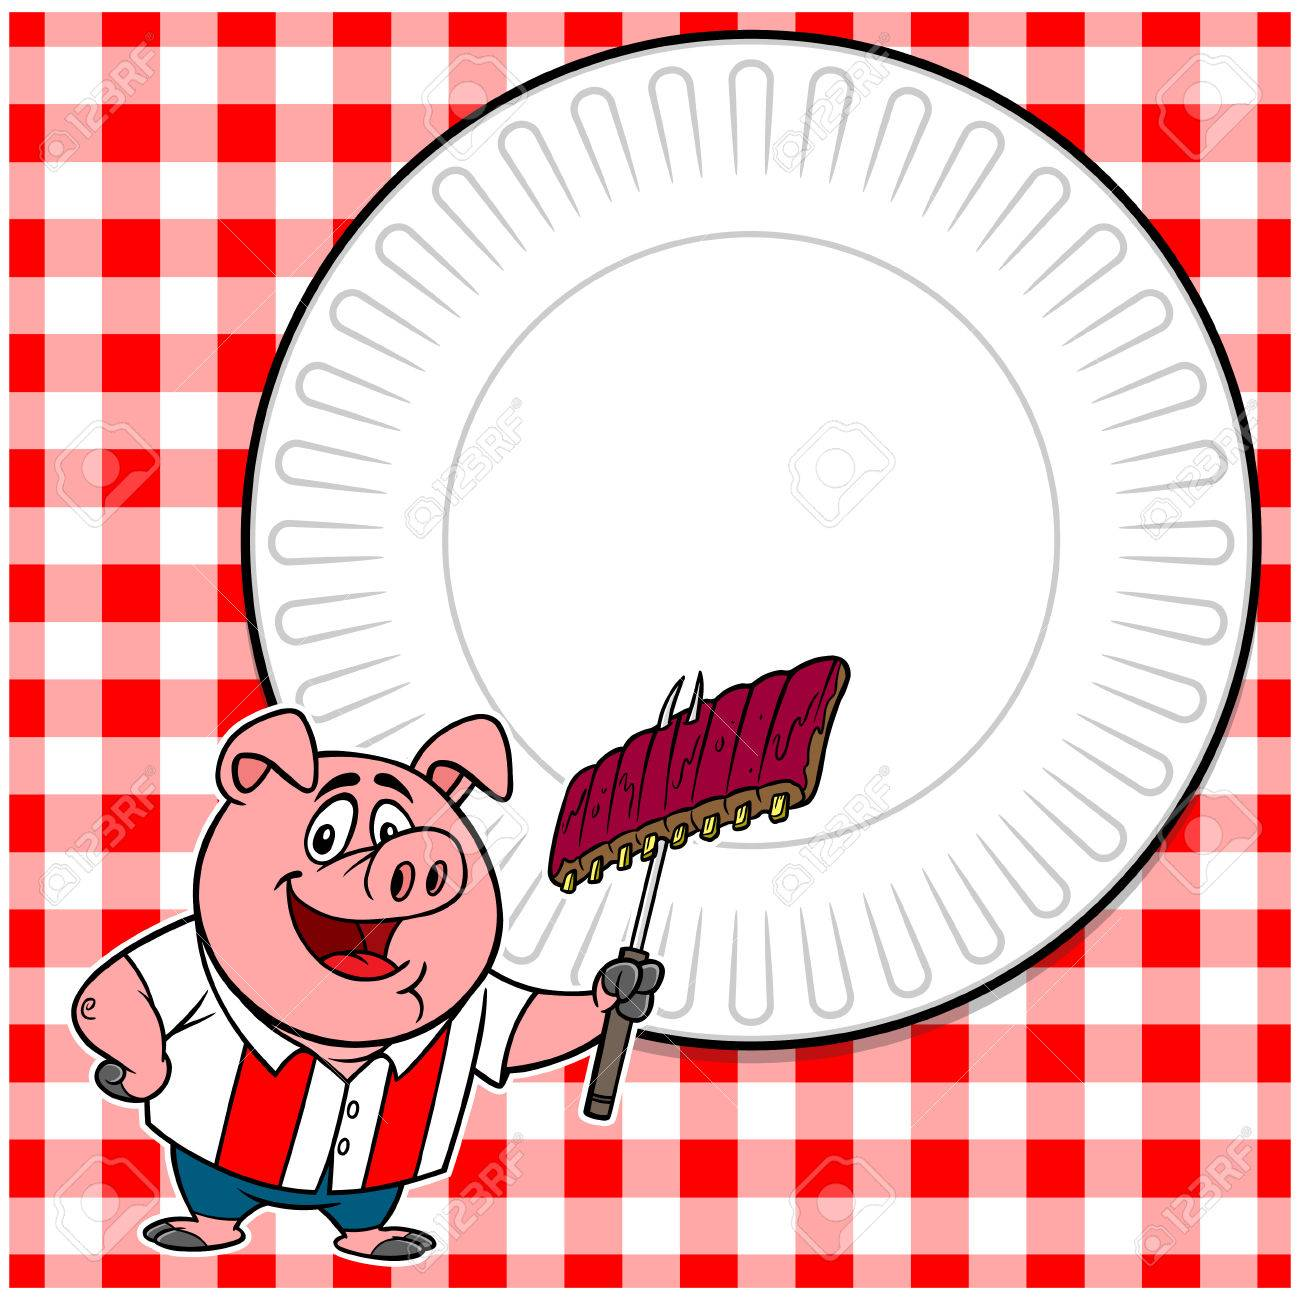 bbq cookout invite royalty free cliparts vectors and stock